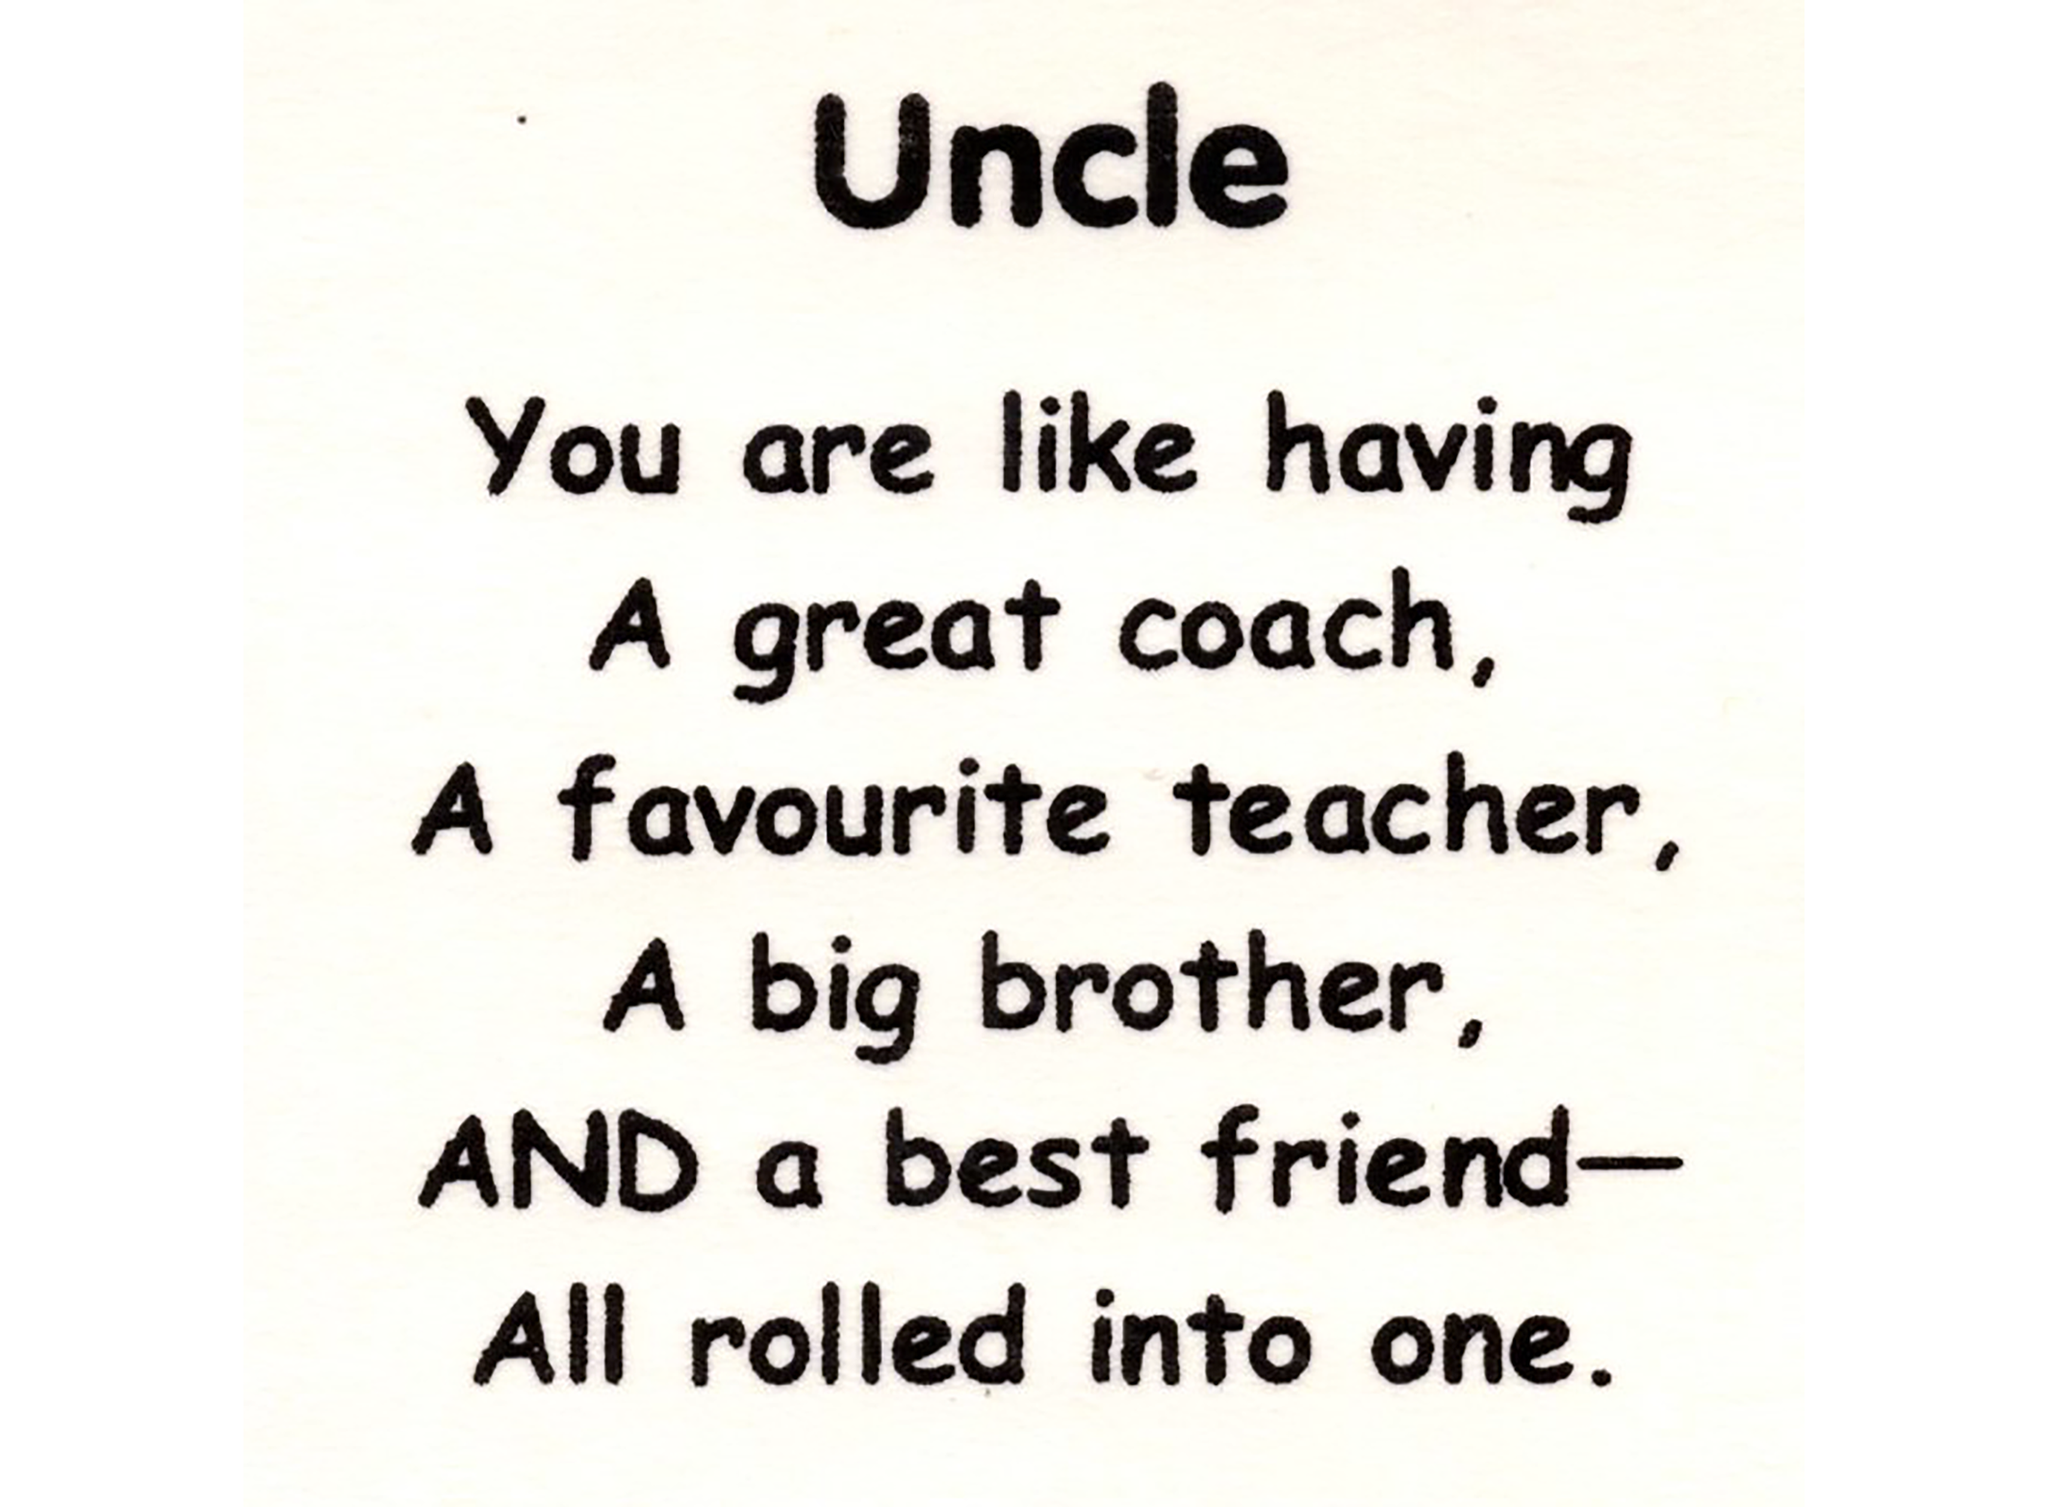 Sweet saying Uncle You are like having a great coach A favourite teacher A big brother AND a best friend all rolled into one